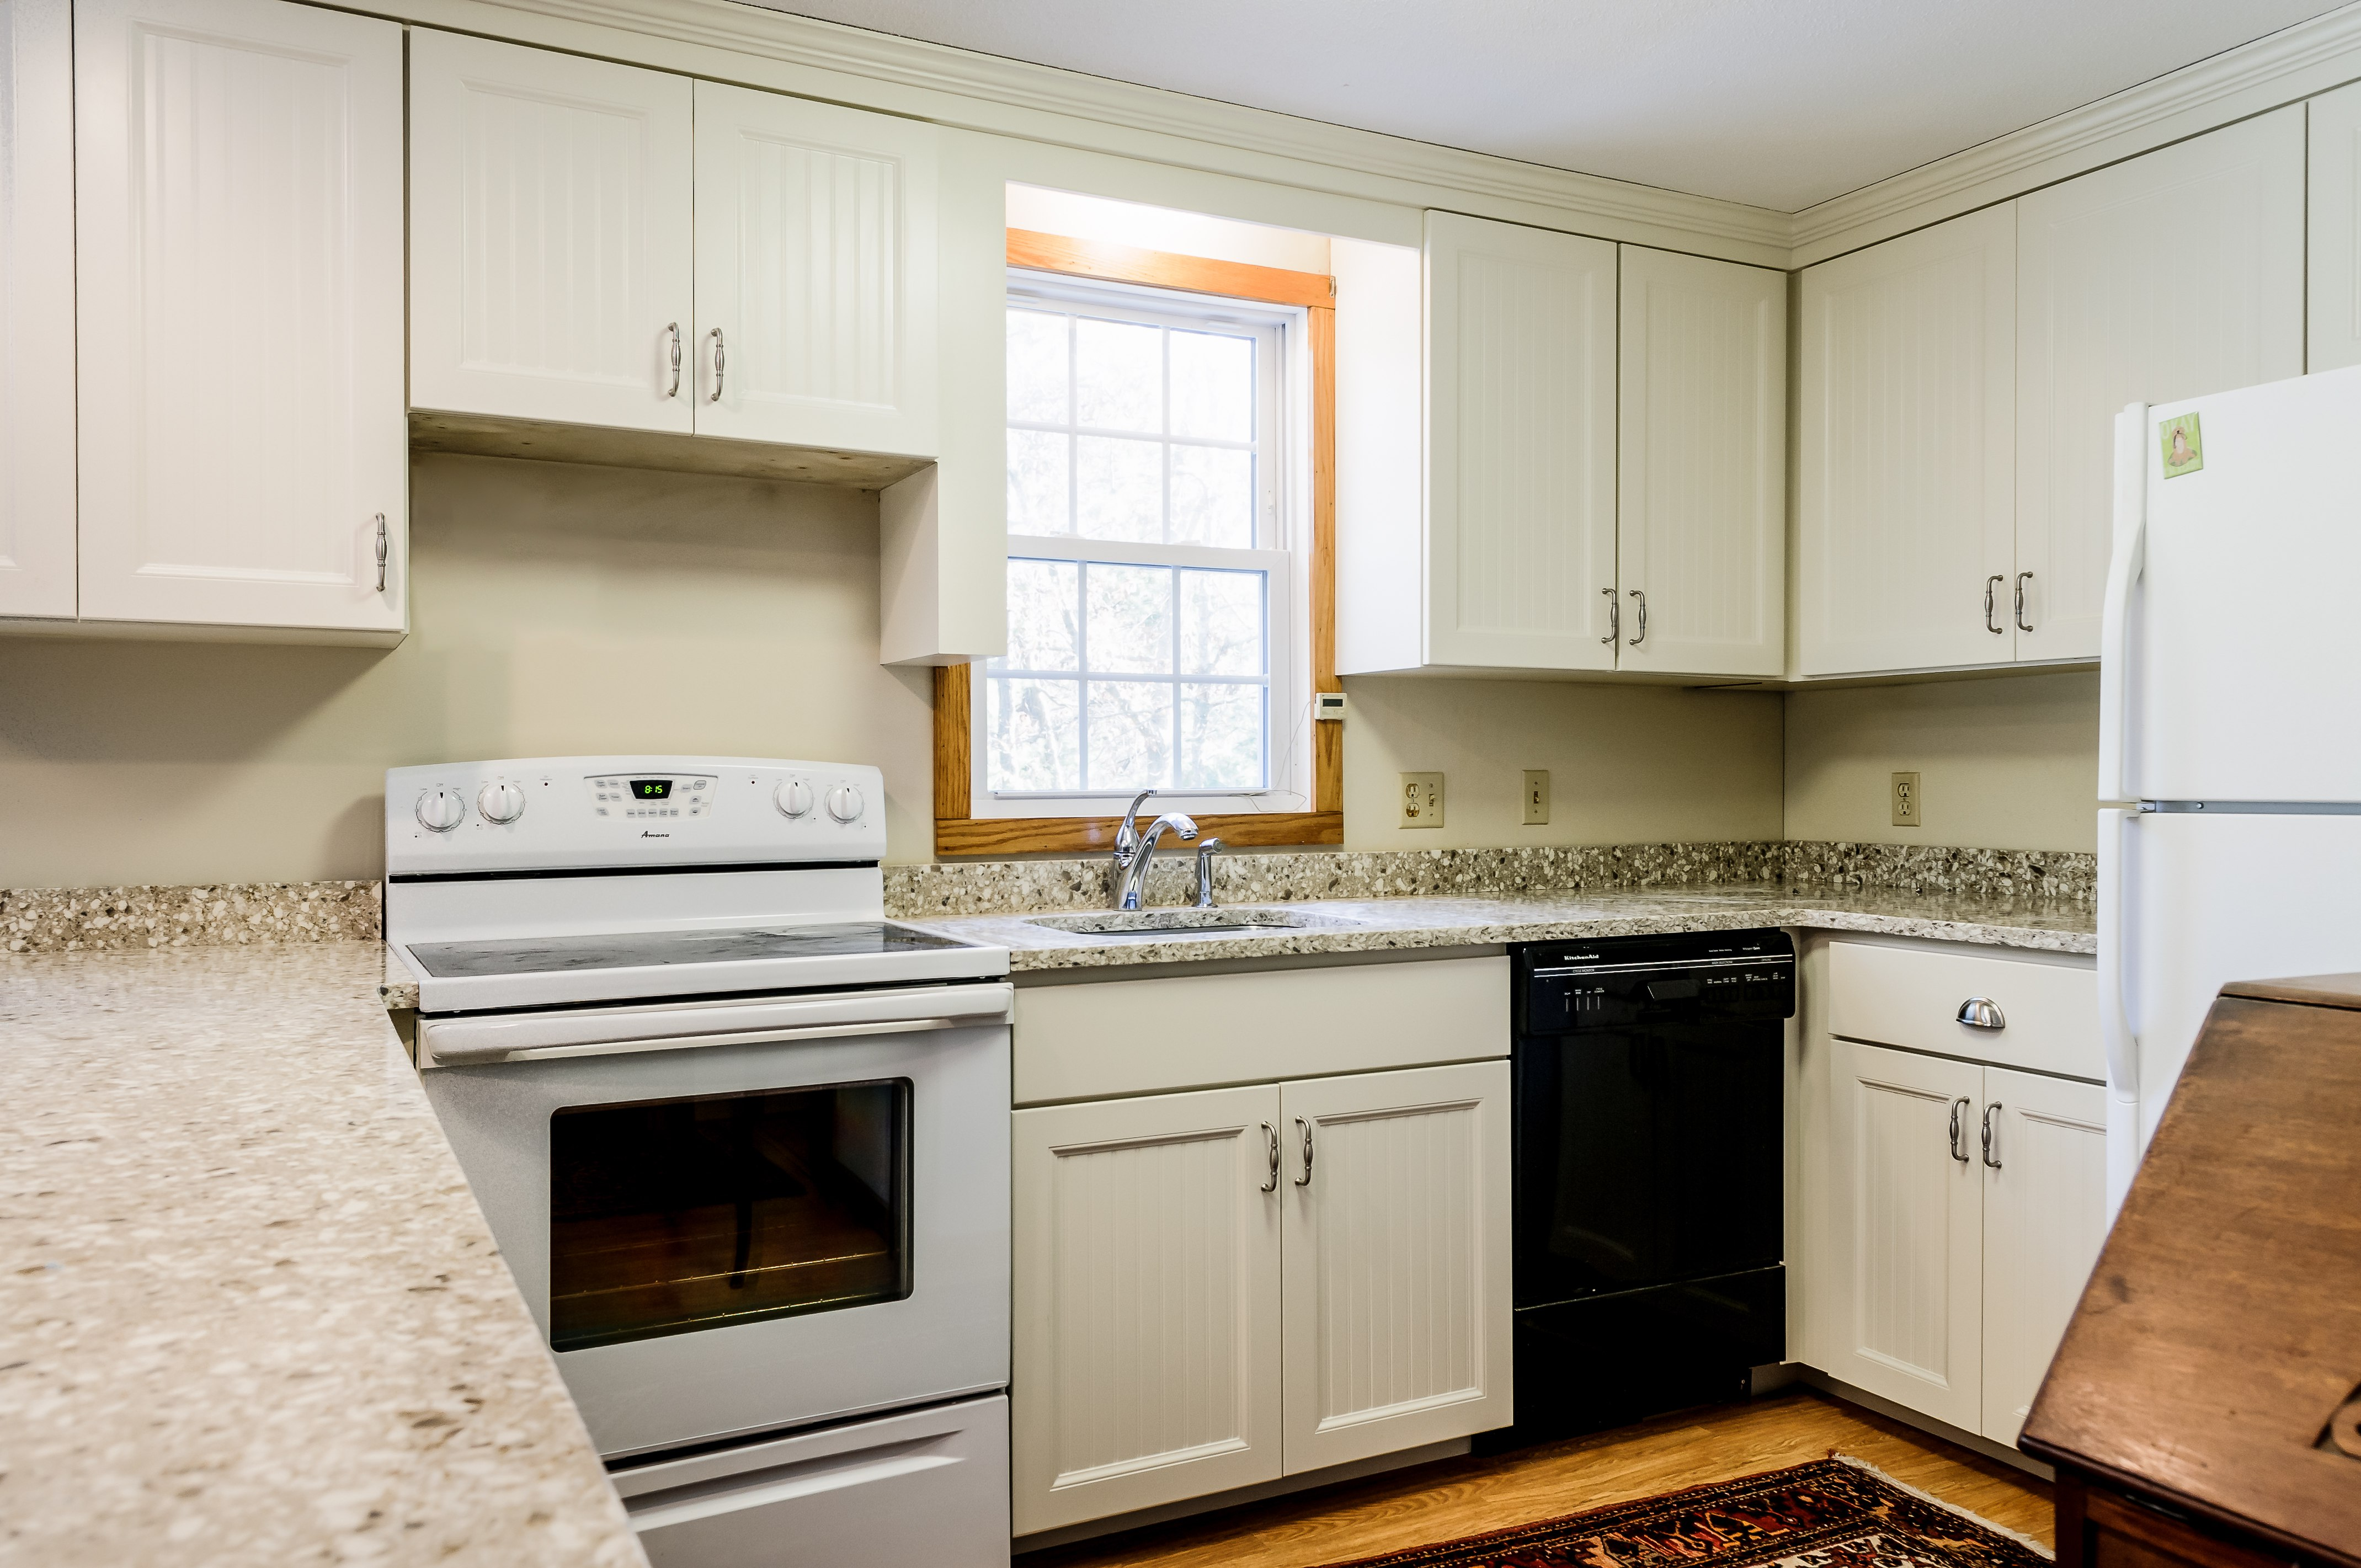 cabinet refacing refacing kitchen cabinets cabinet refacing Cabinet Refacing blank